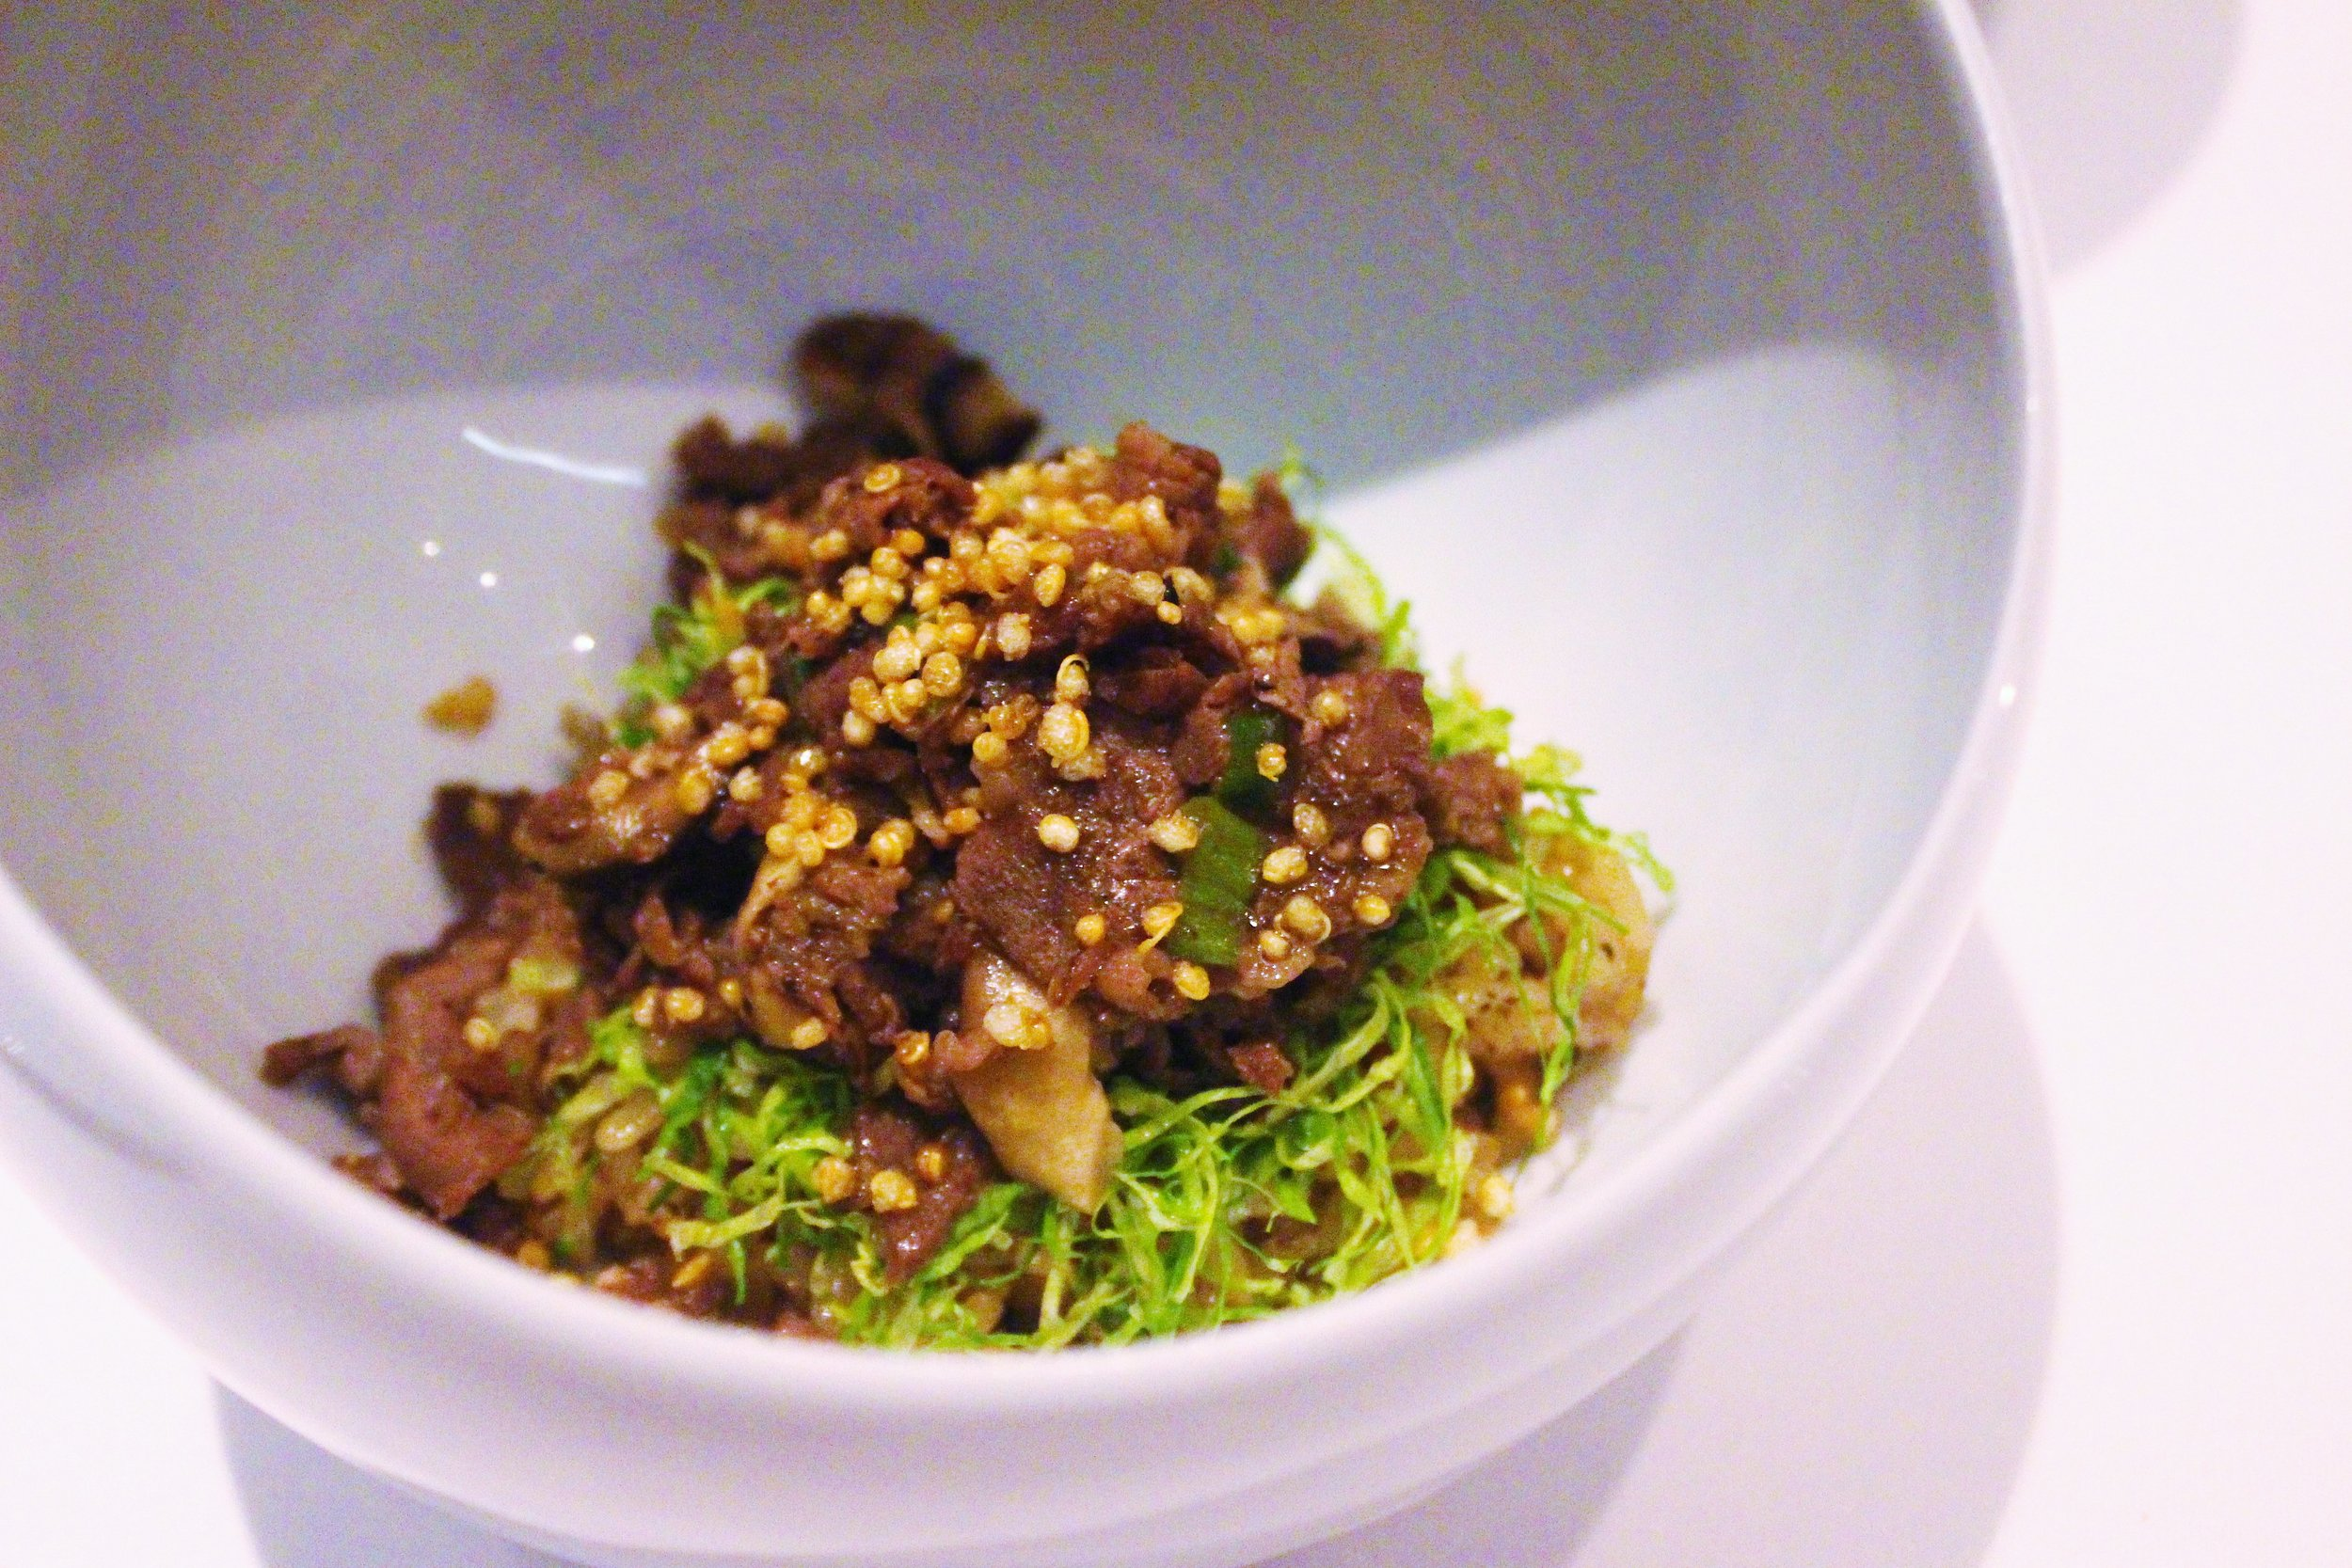 Truffle Bulgogi with White Truffle Pate and Wild Sesame